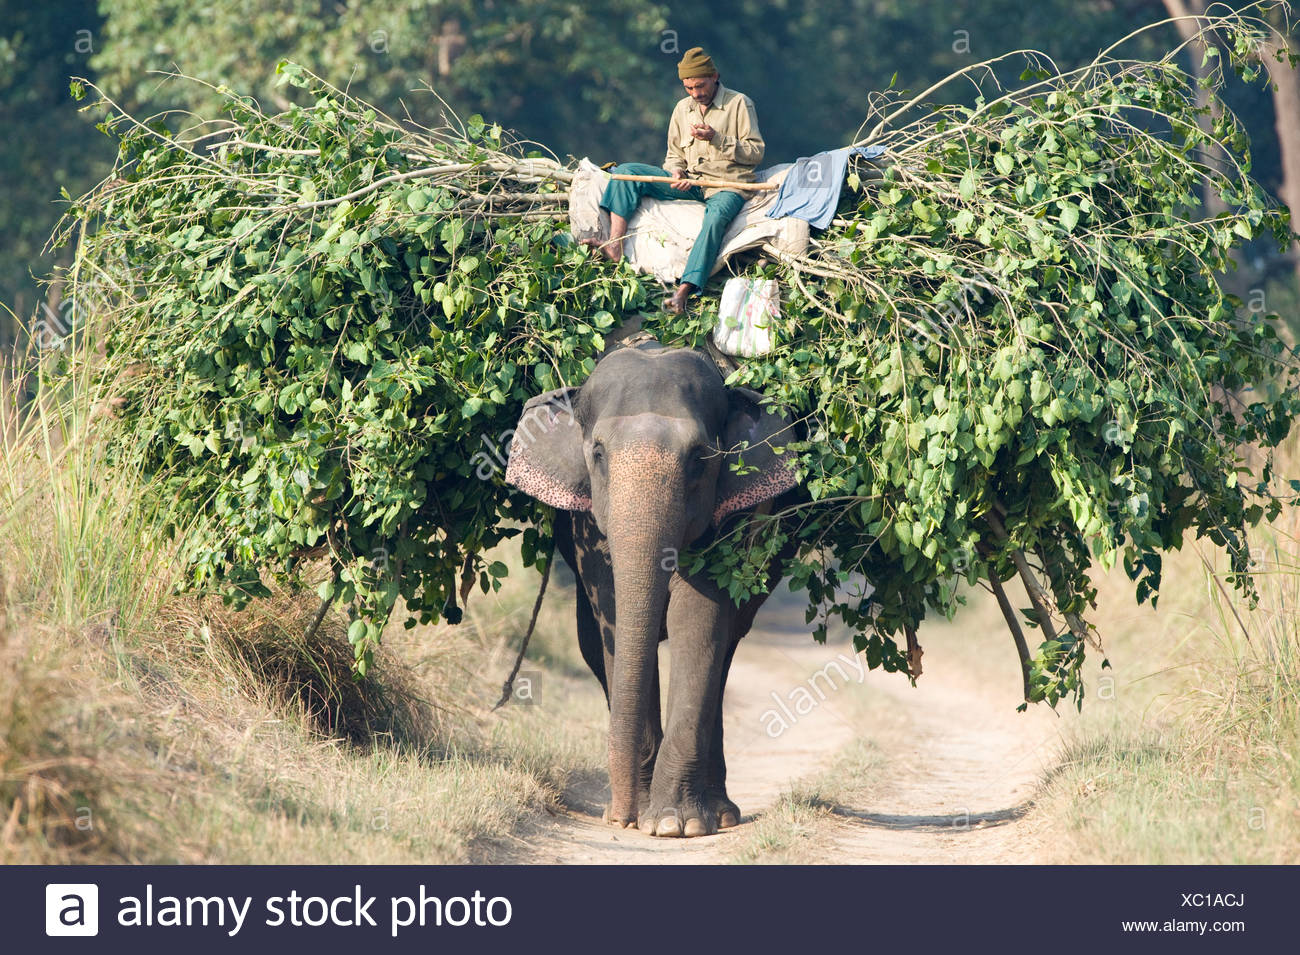 Mahout man riding elephant carrying branches India - Stock Image